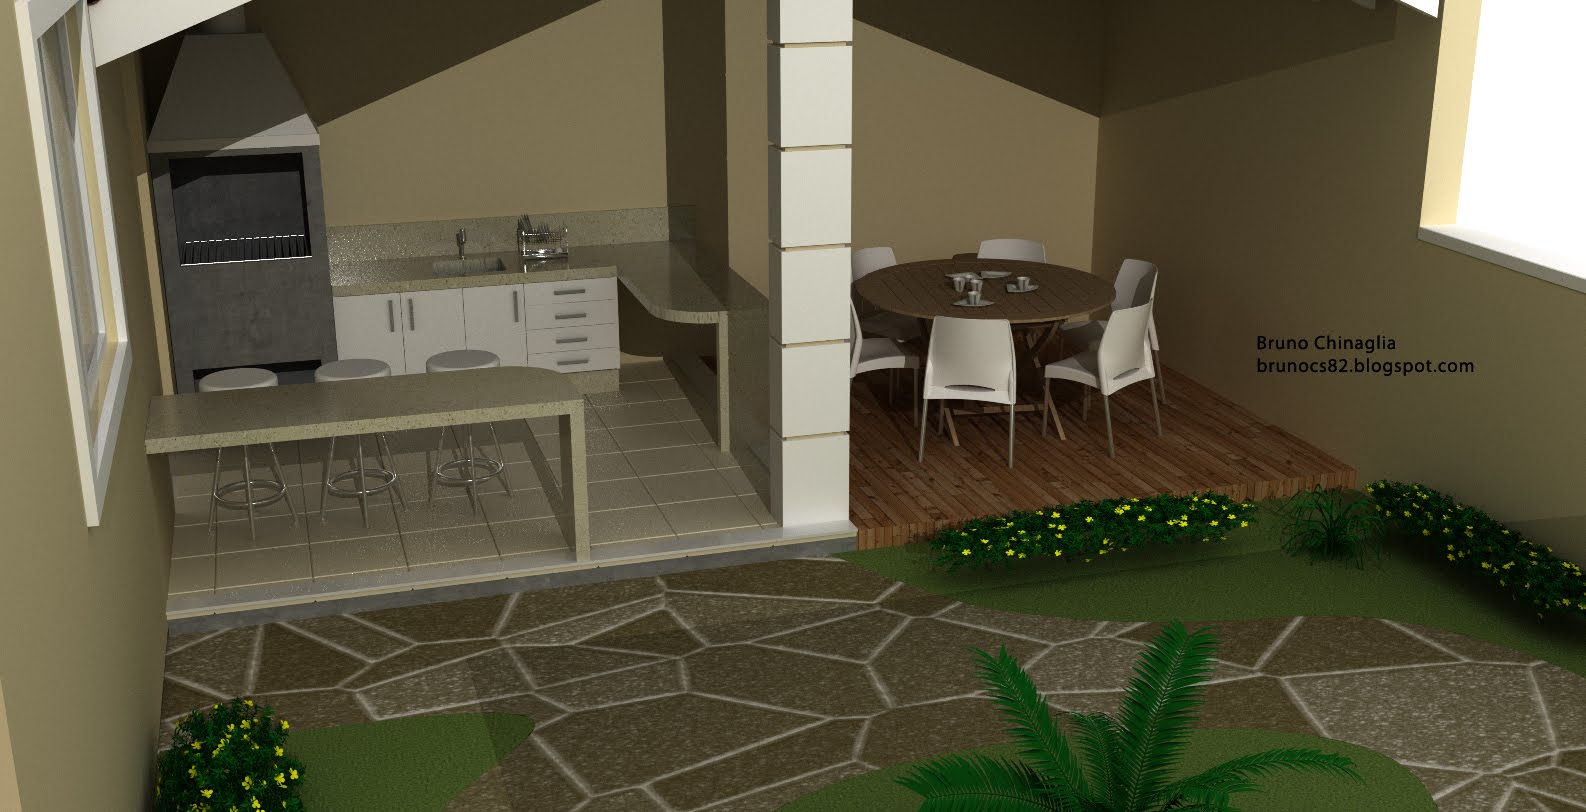 Chinaglia Design: Area de Lazer #AEB312 1586 812